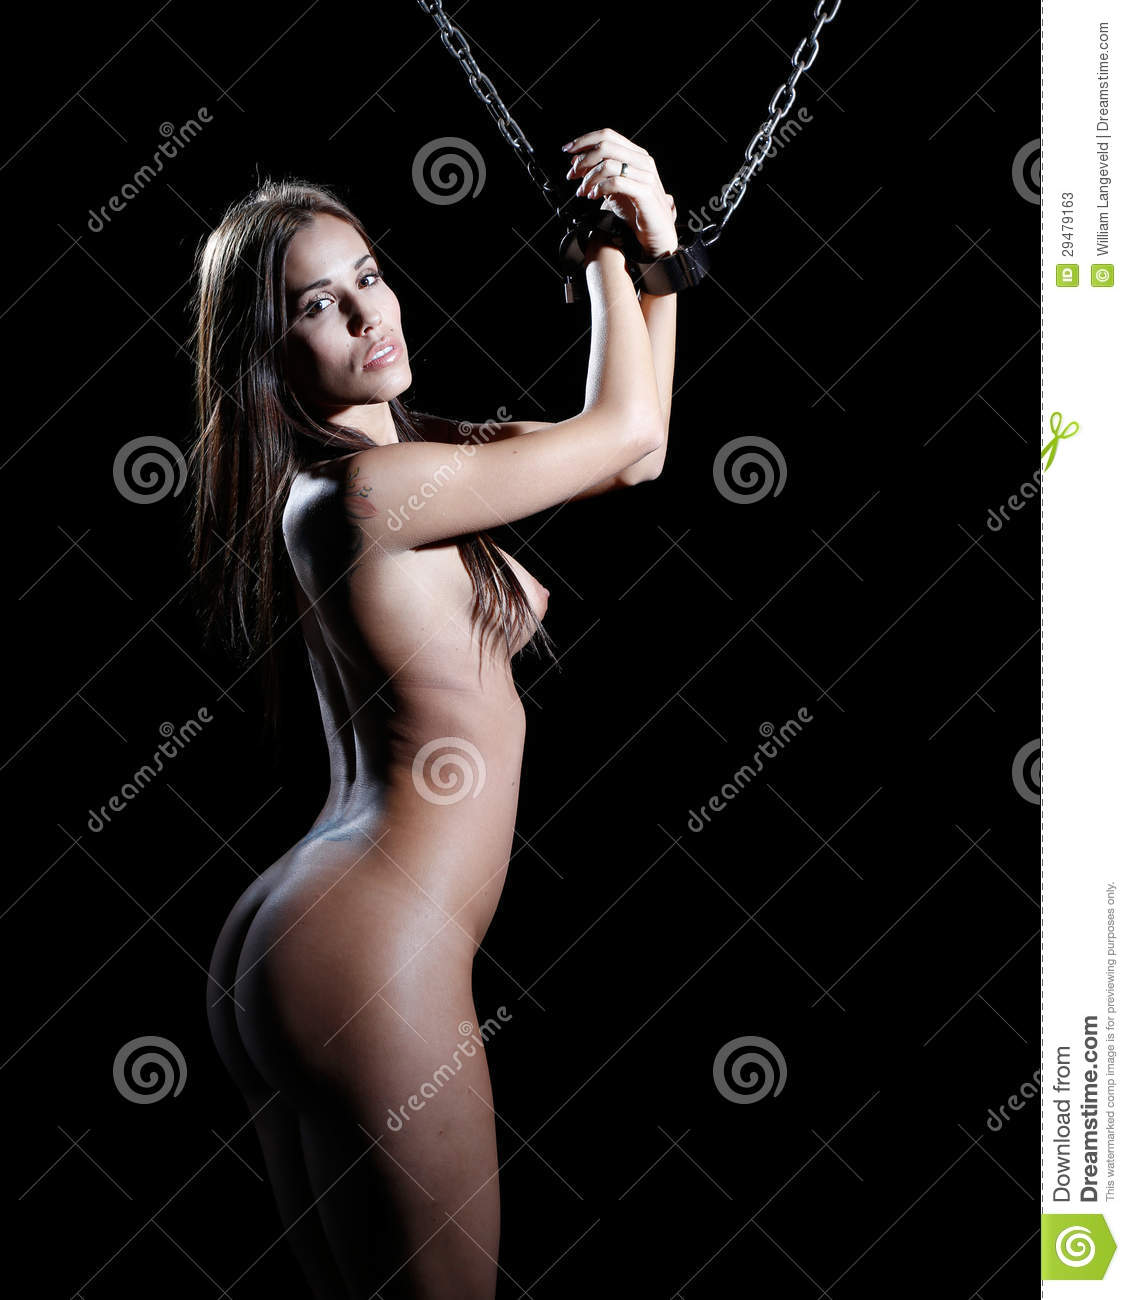 Bondage Art Style With Nude Or Naked Woman Tied Up With A -7848